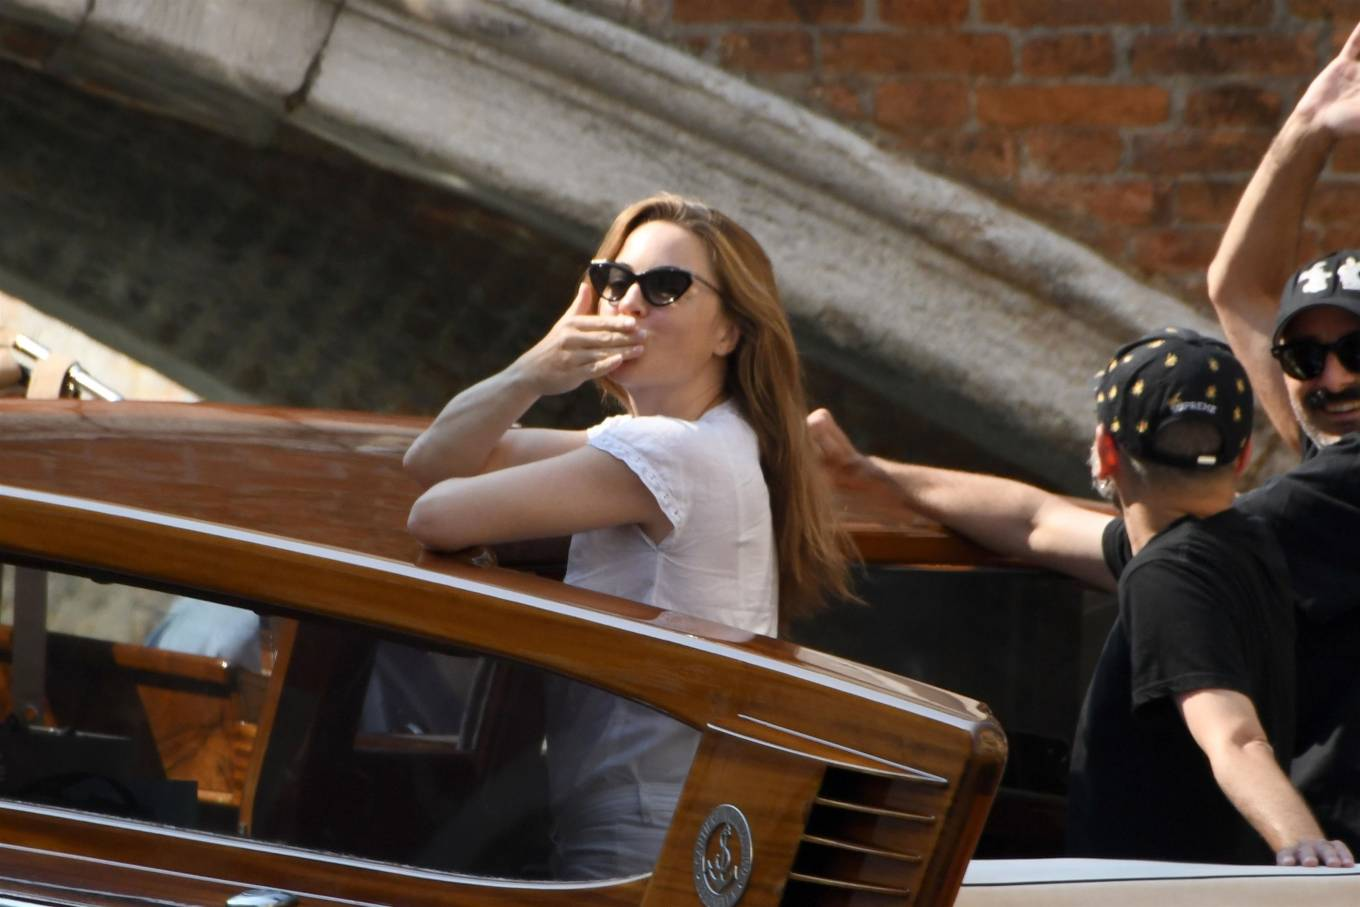 Melissa George 2020 : Melissa George – Out in Venice – Italy-20